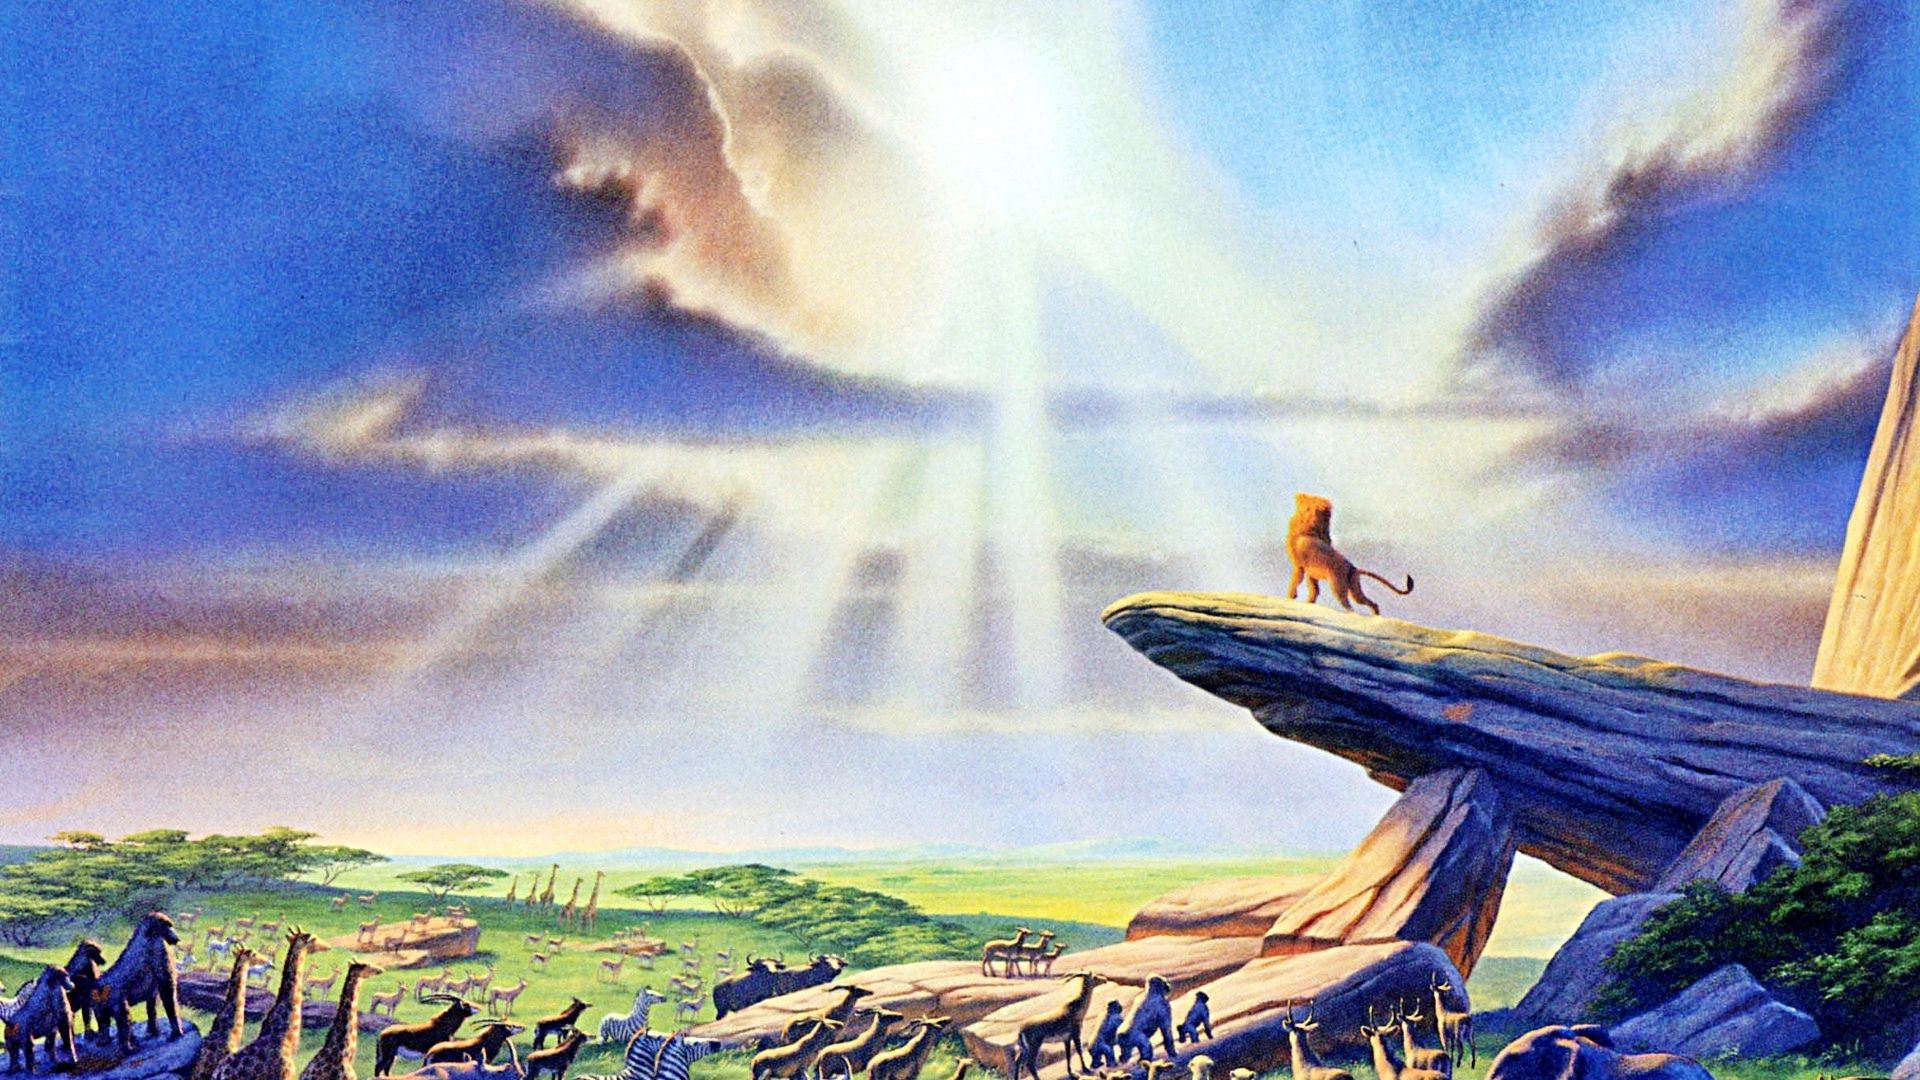 Walt Disney Wallpaper Of The Lion King HD And Background Photos Wallpapers